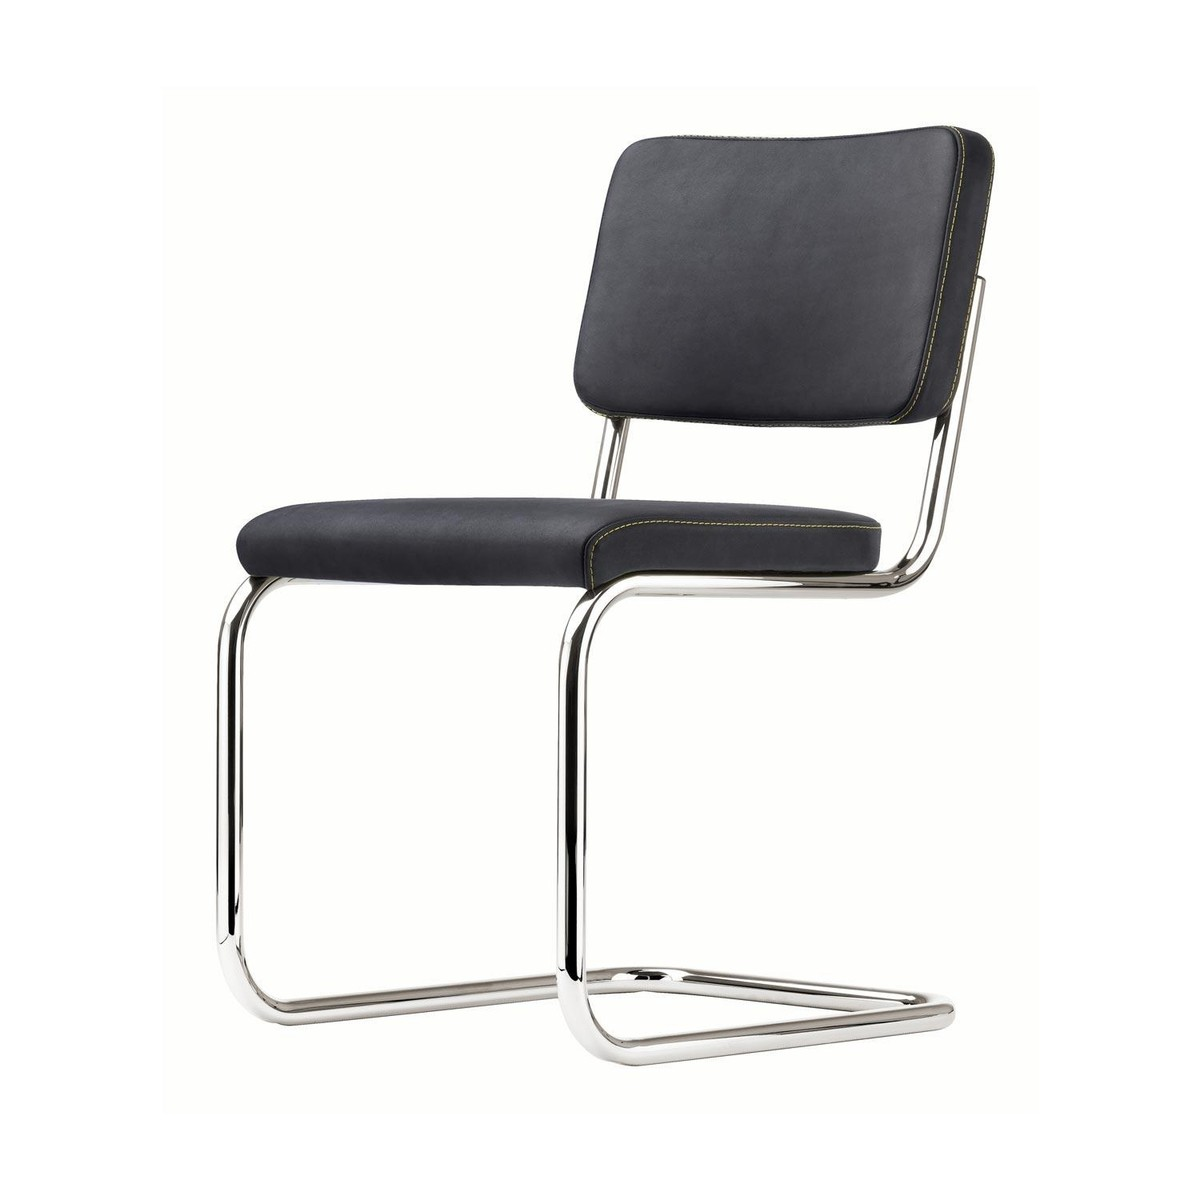 Thonet S 32 Cantilever Chair Thonet